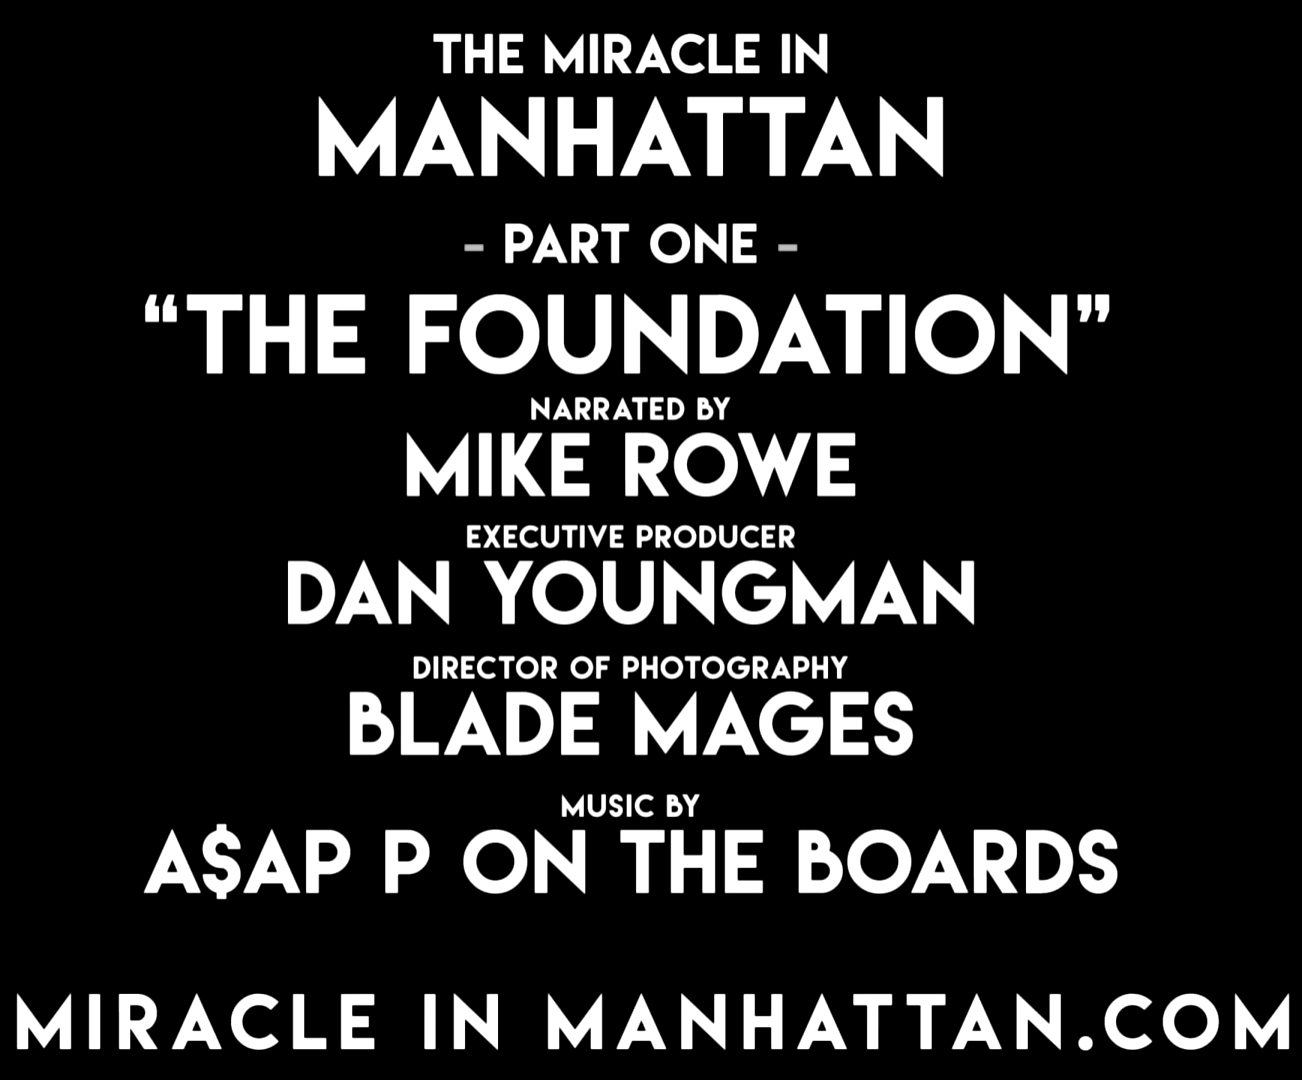 The Miracle in Manhattan